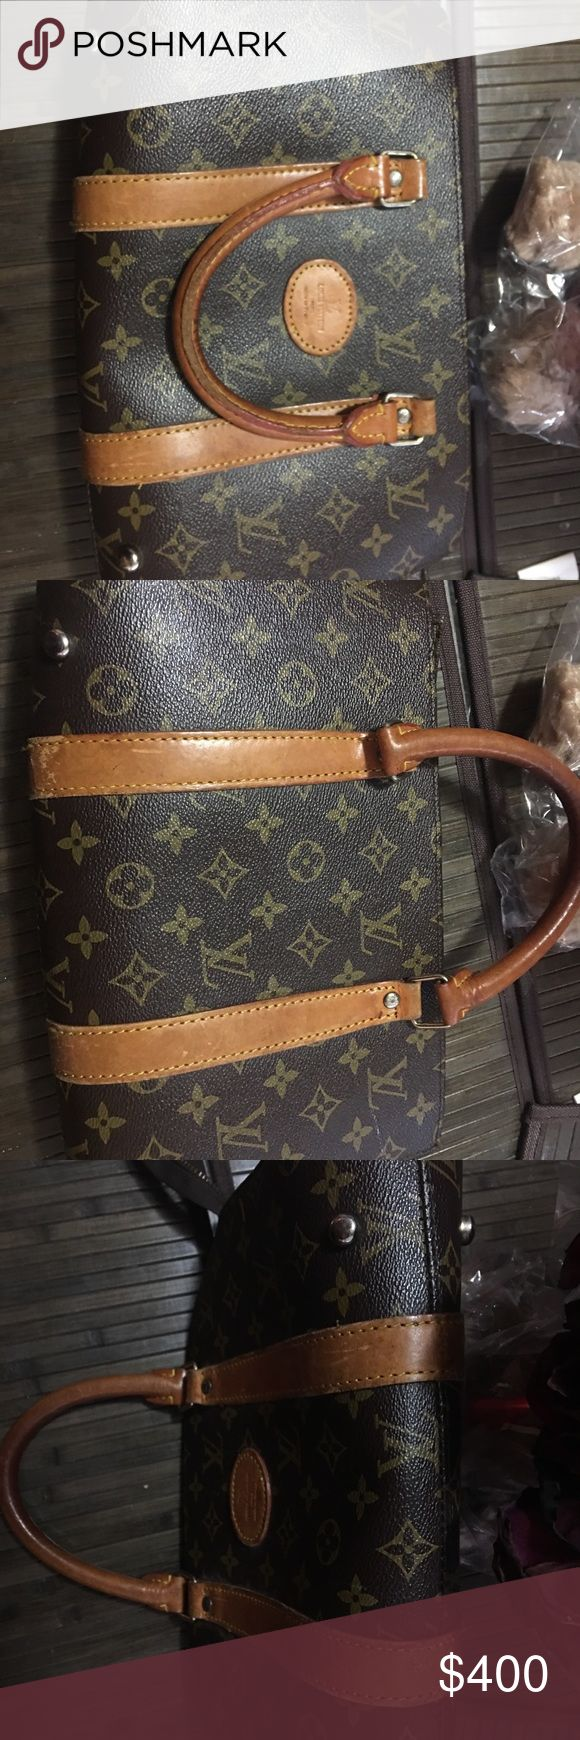 Louis Vuitton Vintage handbag Made in Italy. Louis Vuitton handbag made in Italy, i hade this handbag for over 15 yrs very nice Leather Handbag Canvas. The Zipper gets stuck to small don't used at all. Louis Vuitton Bags